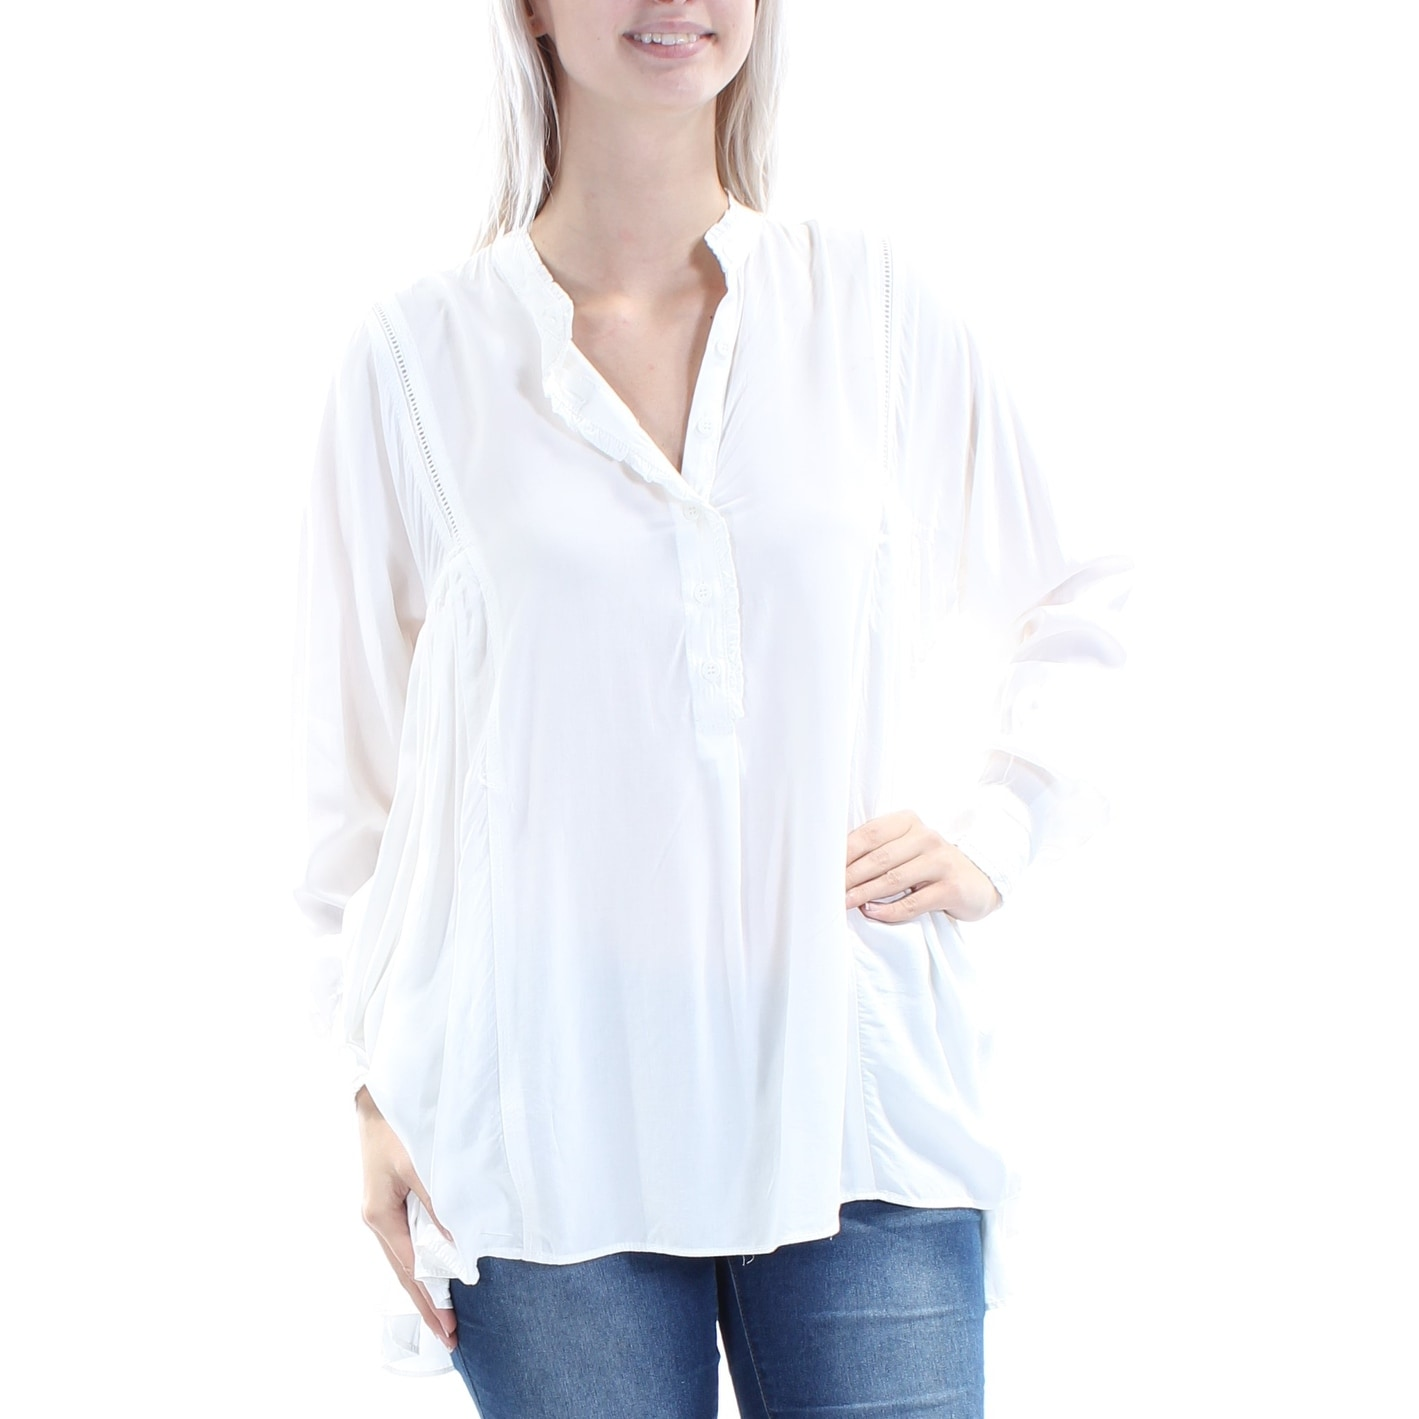 00fc67adcf951 Shop MAX STUDIO Womens Ivory Ruffled Long Sleeve V Neck Hi-Lo Top Size  XS  - On Sale - Free Shipping On Orders Over  45 - Overstock - 22832191